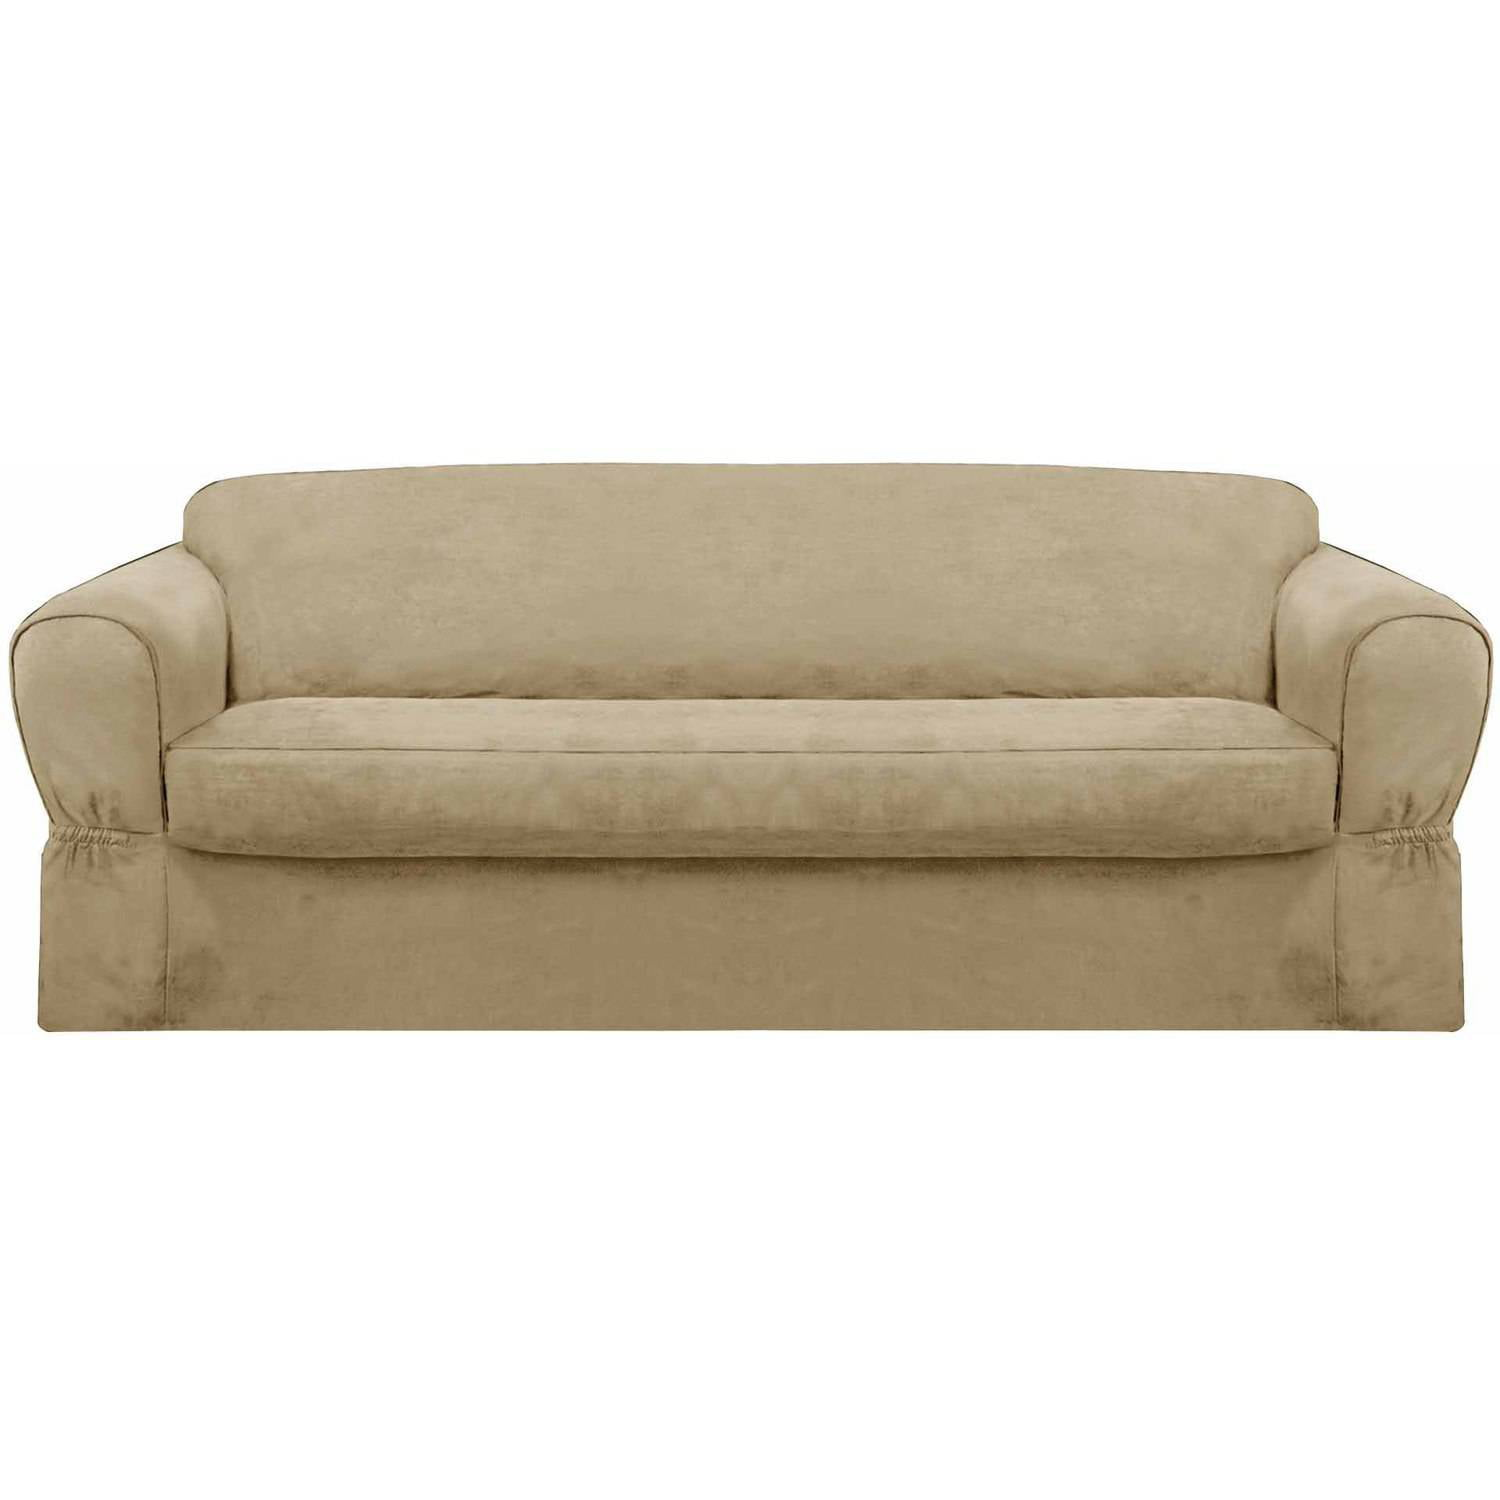 Maytex Piped Faux Suede Non Stretch 2 Piece Sofa Slipcover